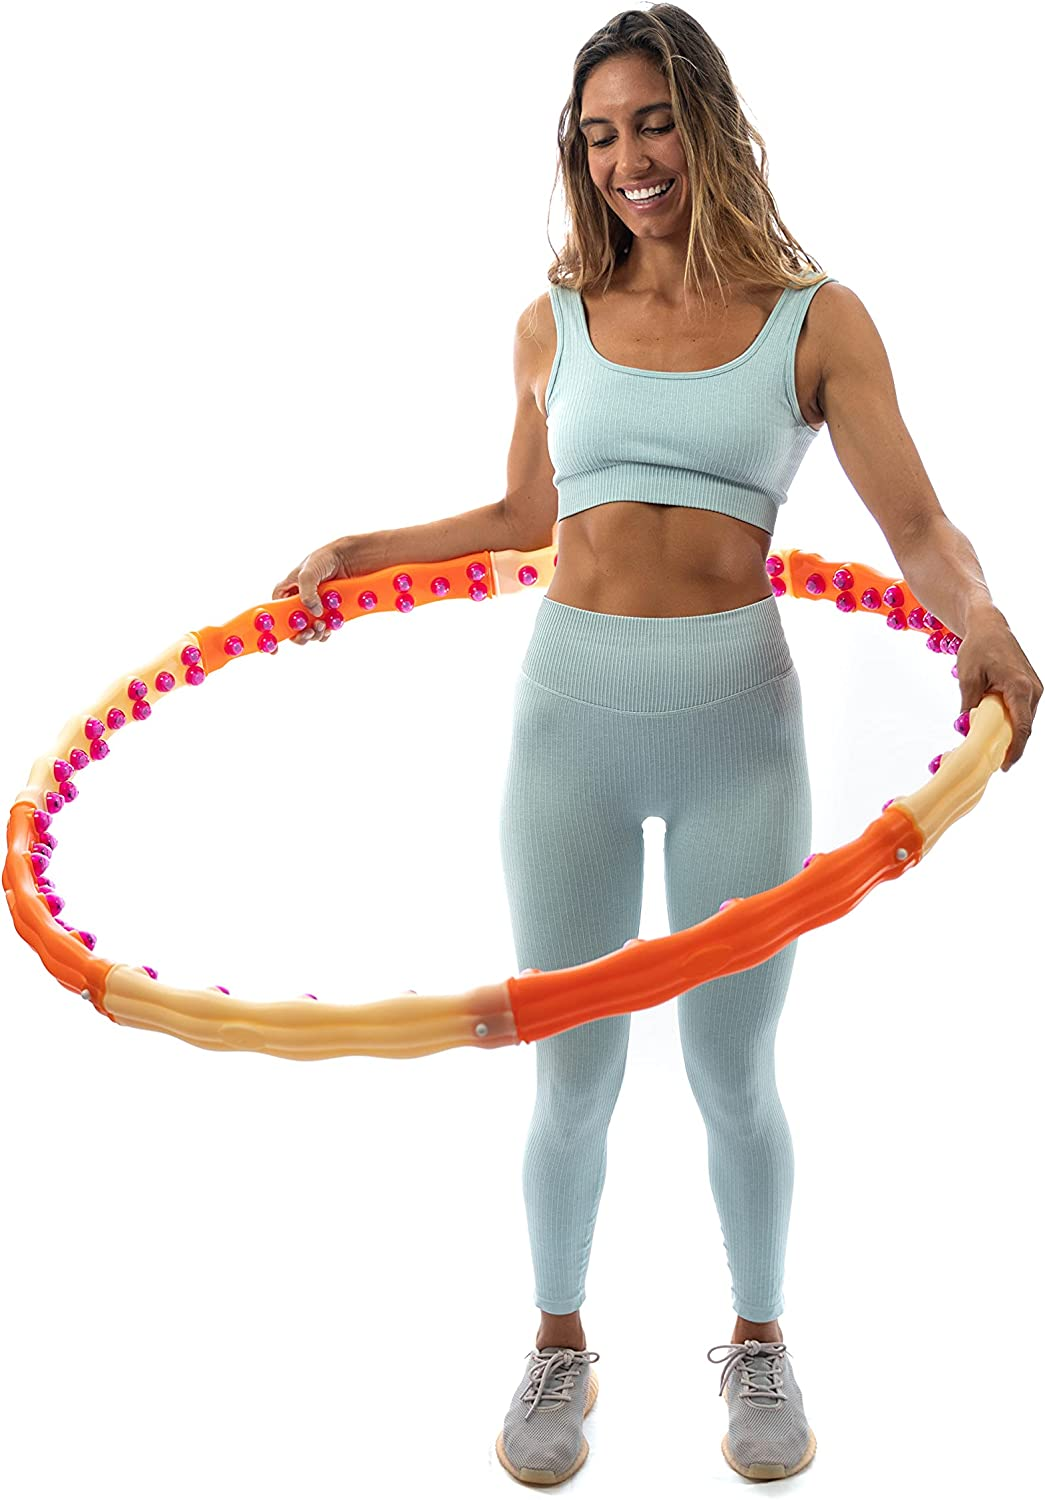 HealthHoop - Weighted Hoop for Cardio Gifts Boost Full Popularity Exercise Body